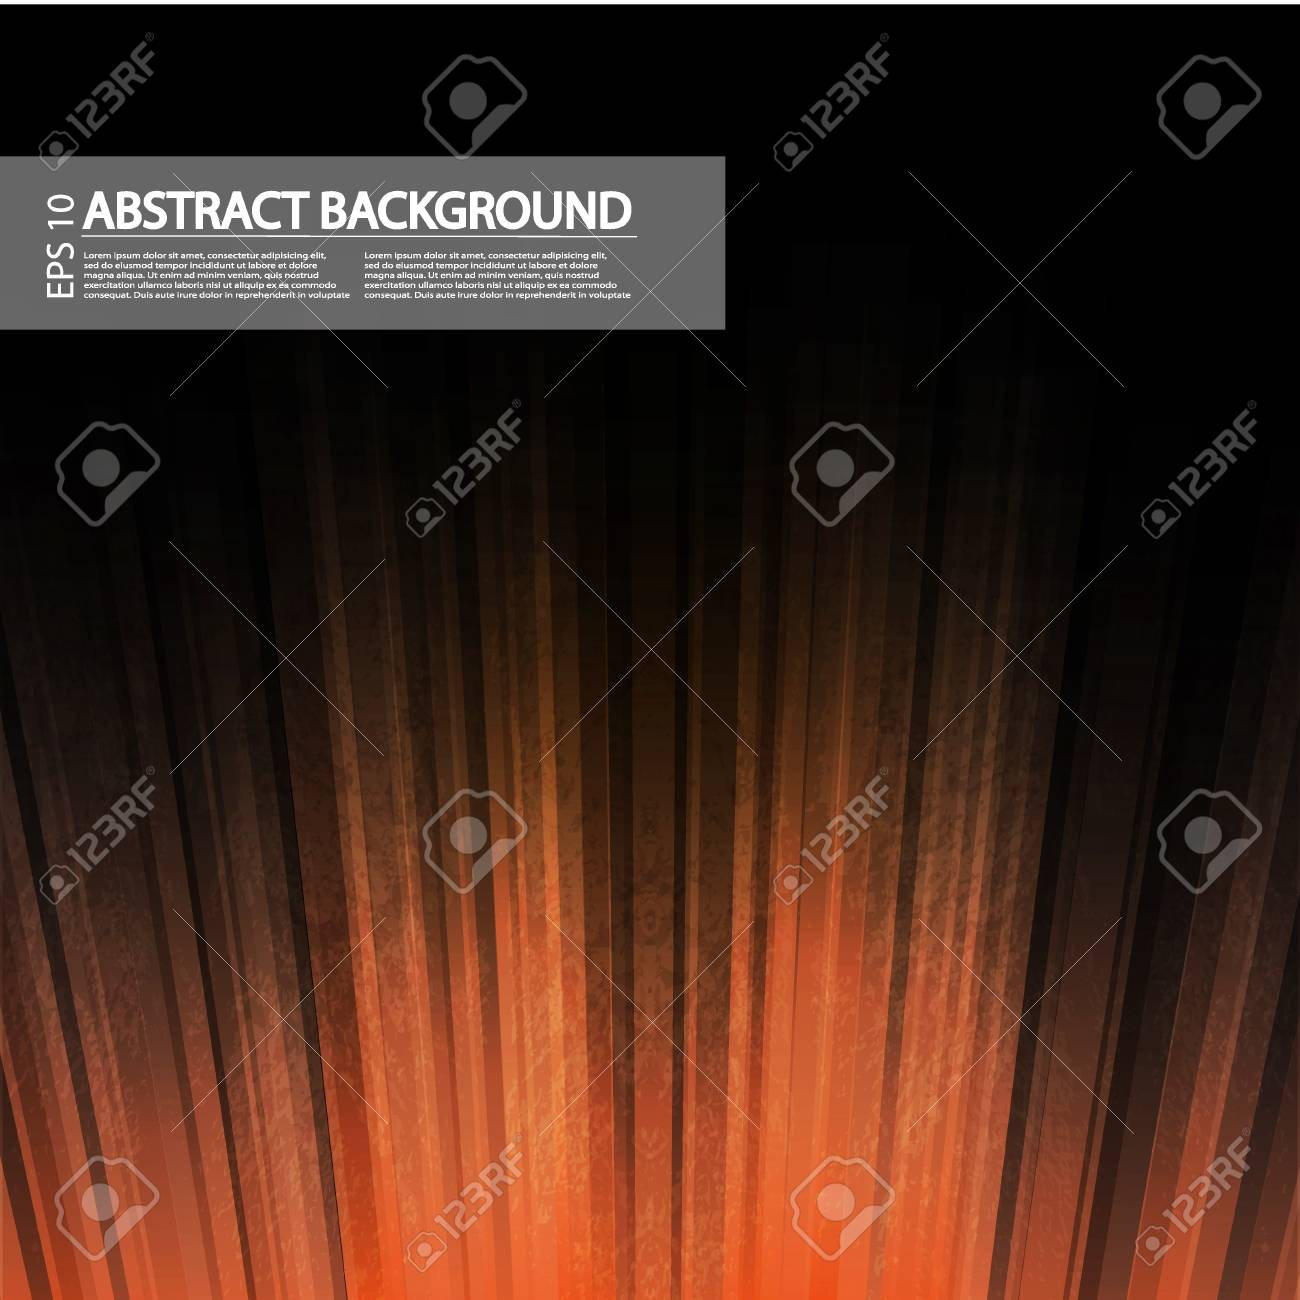 Vector abstract background. Eps 10 Stock Vector - 12494578